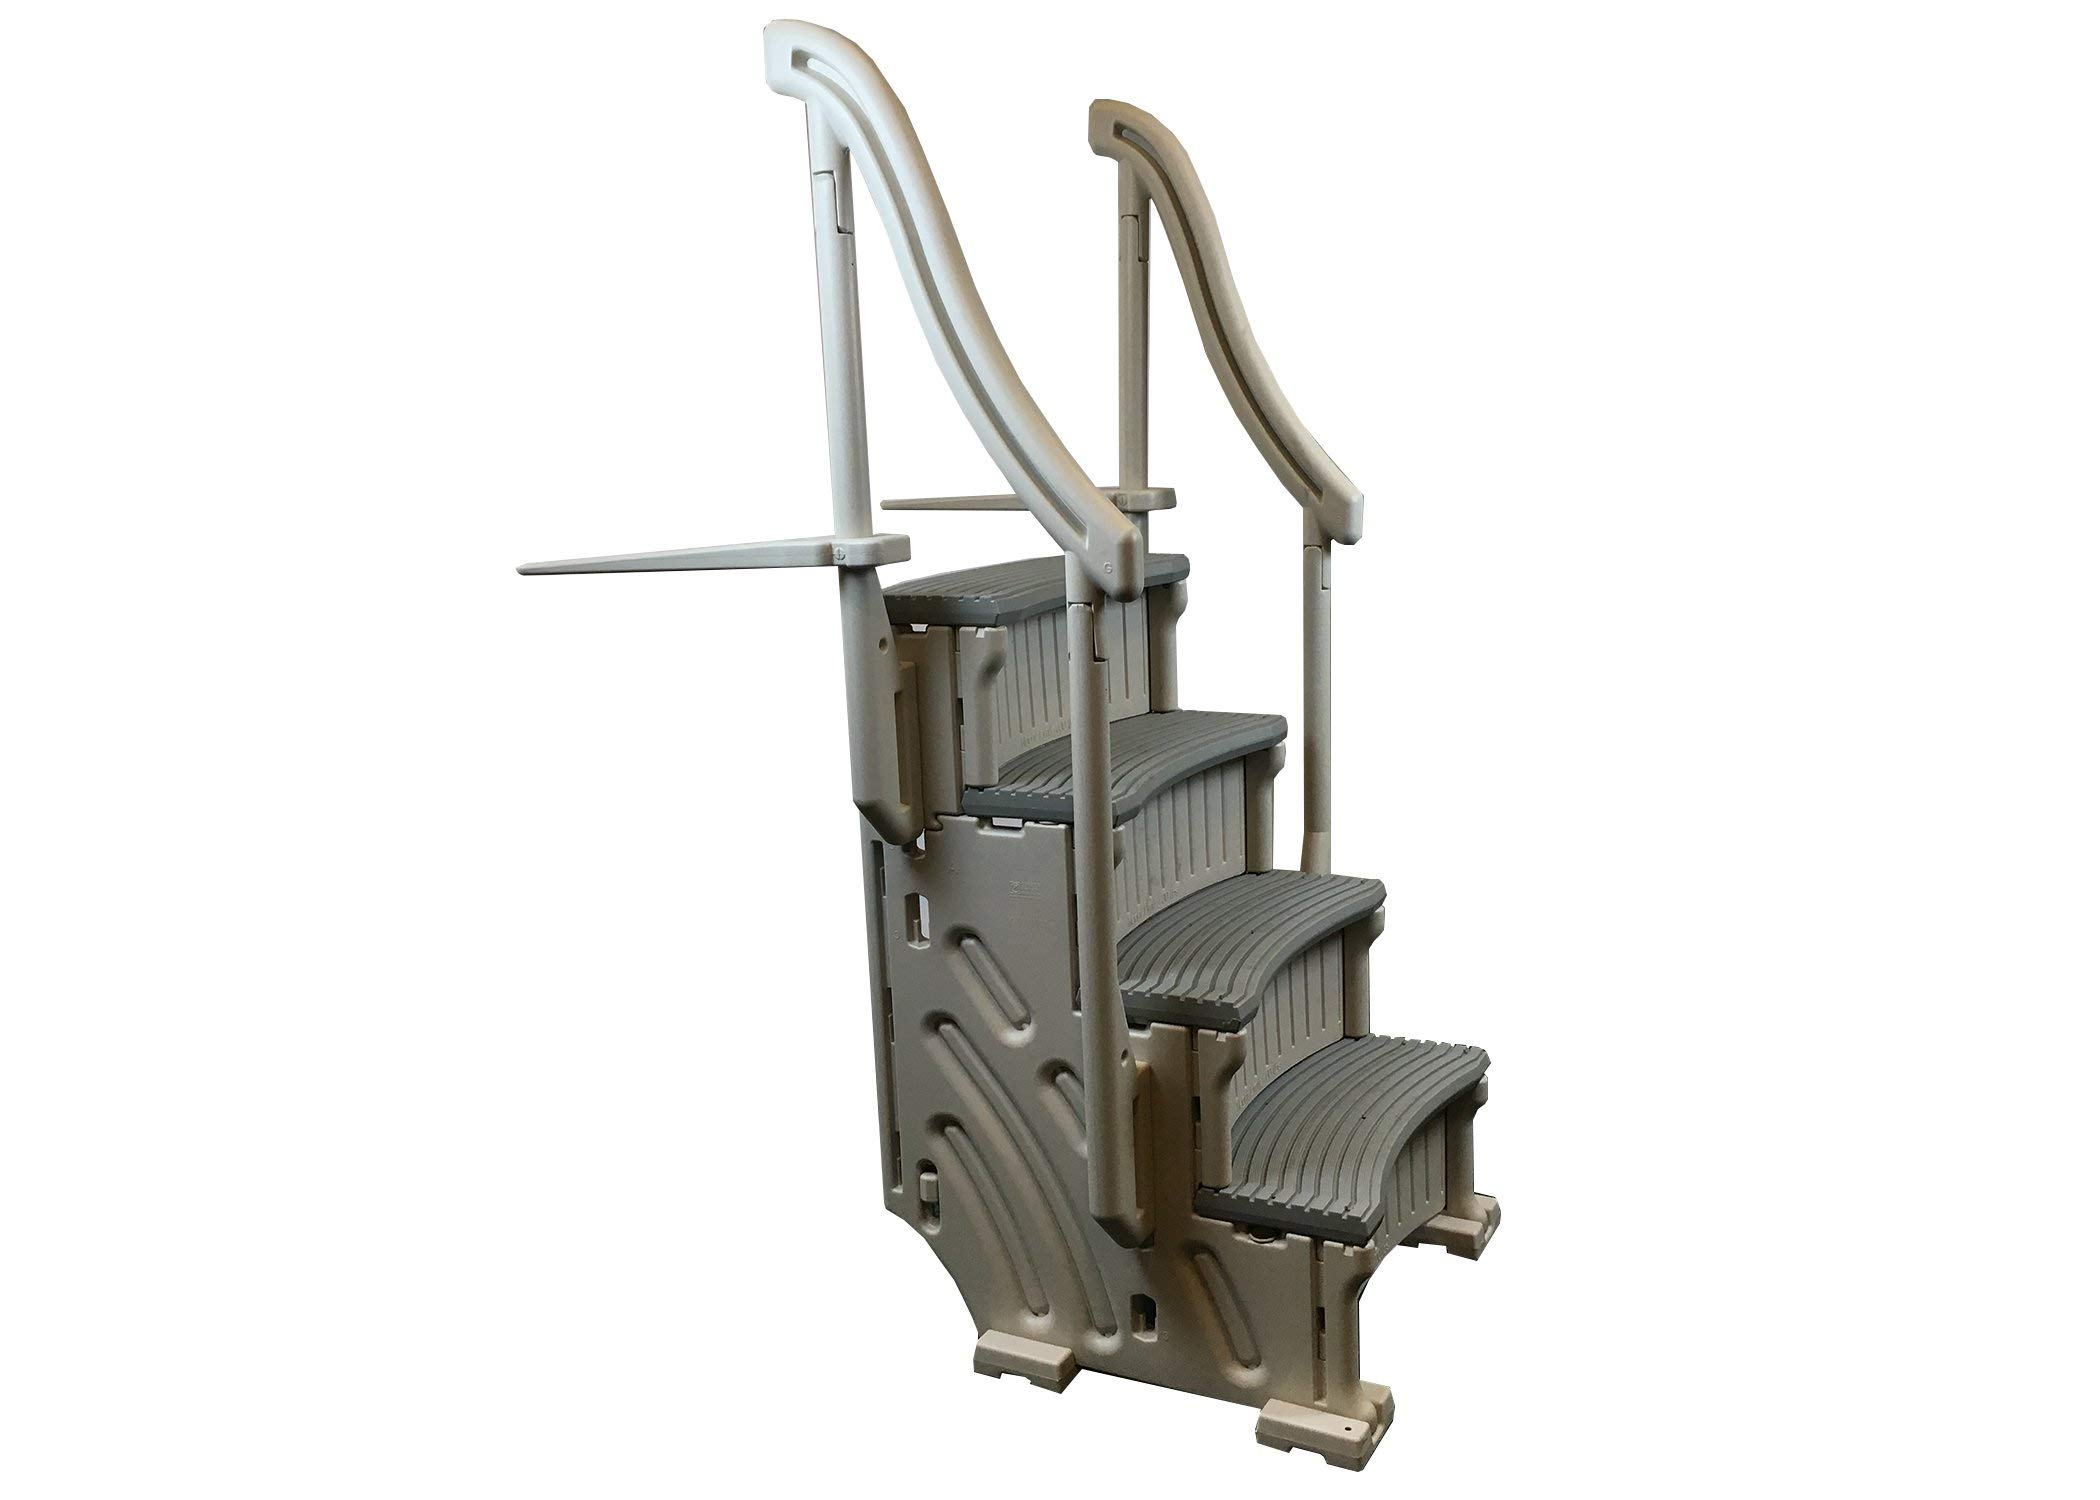 Confer Above Ground Swimming Pool Curve Base Steps - CCX-AG by Confer Plastics